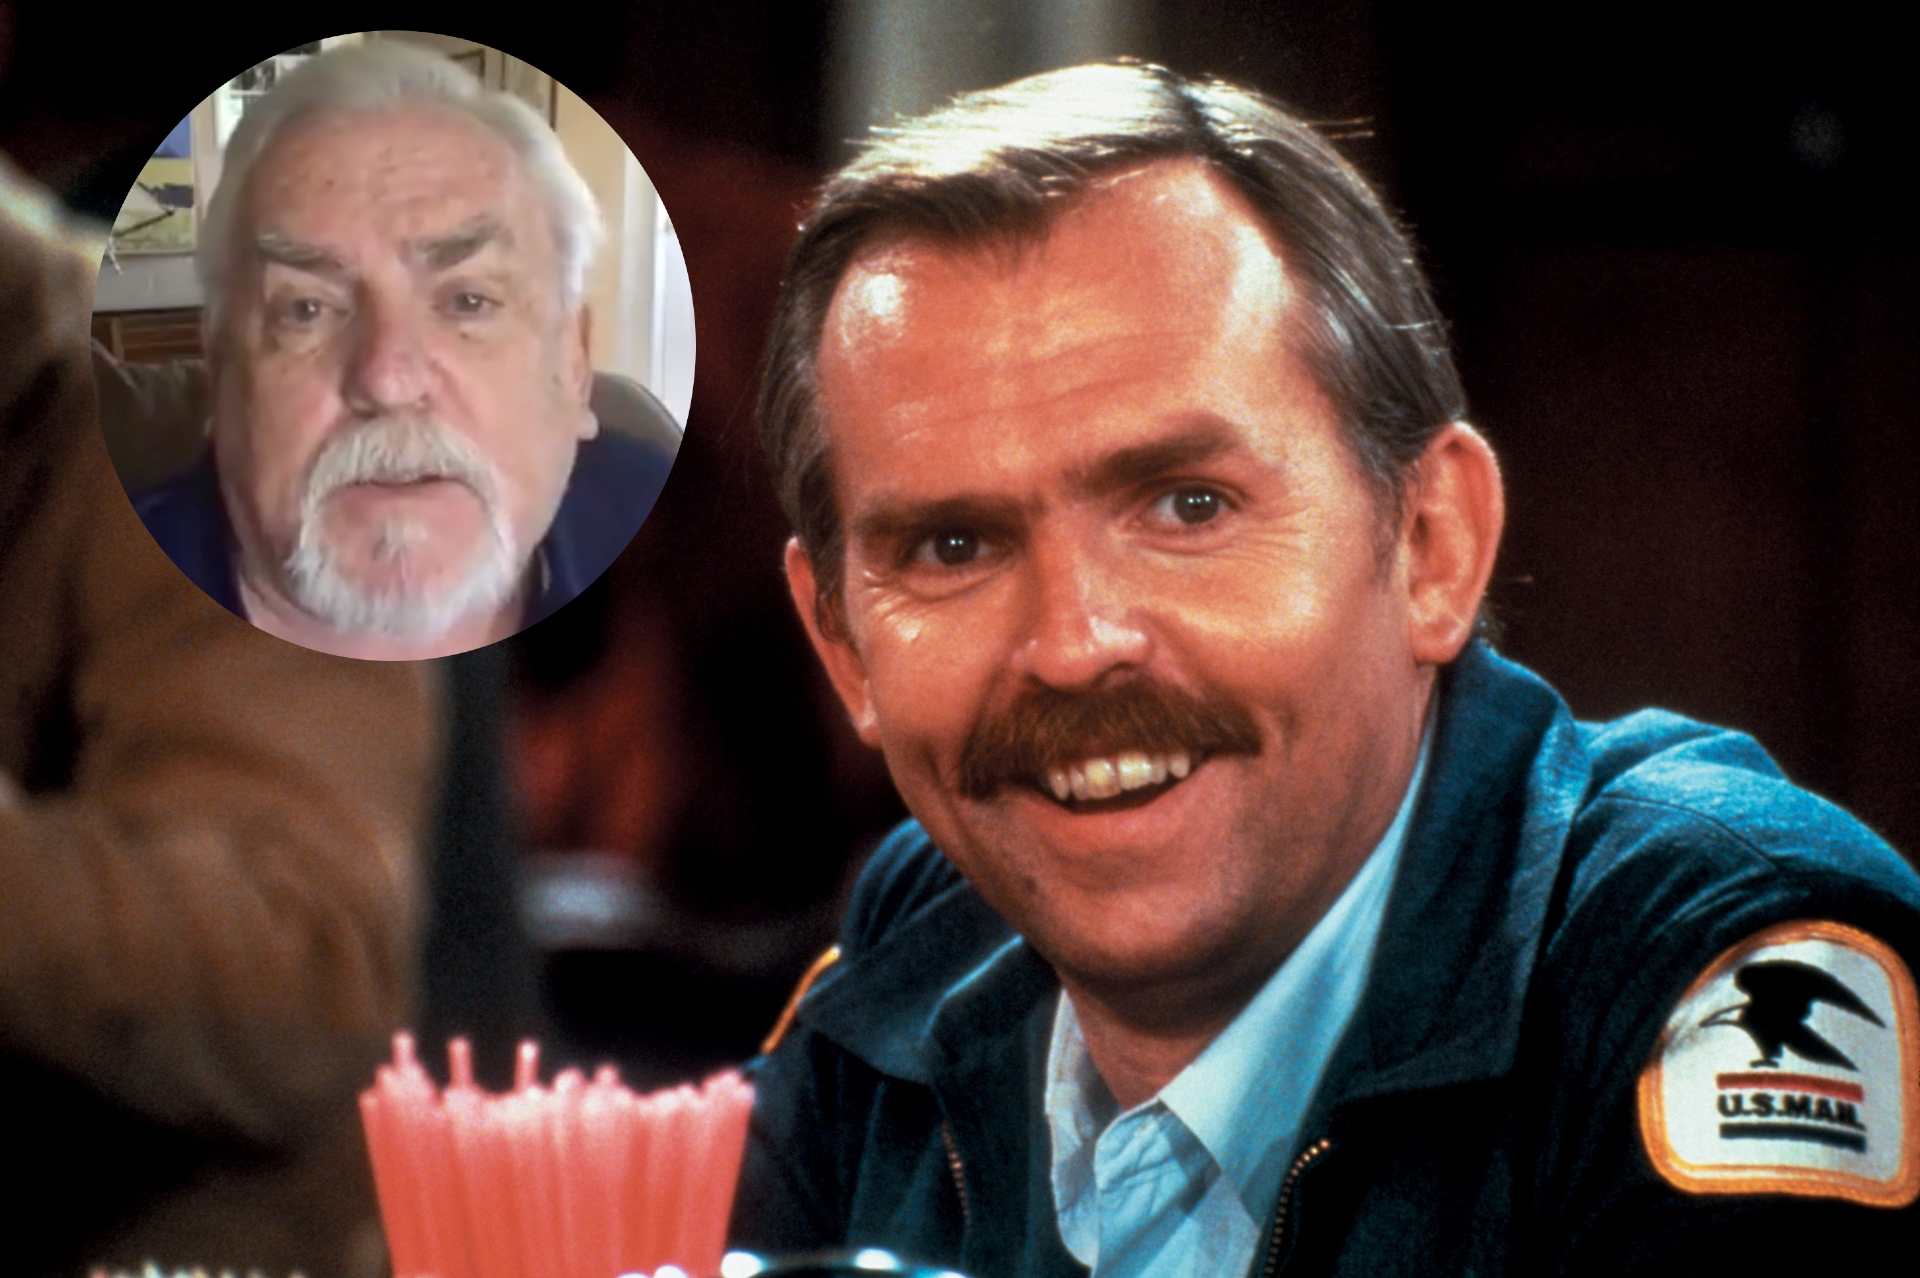 Watch Cheers Star John Ratzenberger Support USPS in Cameo Video |  Consequence of Sound